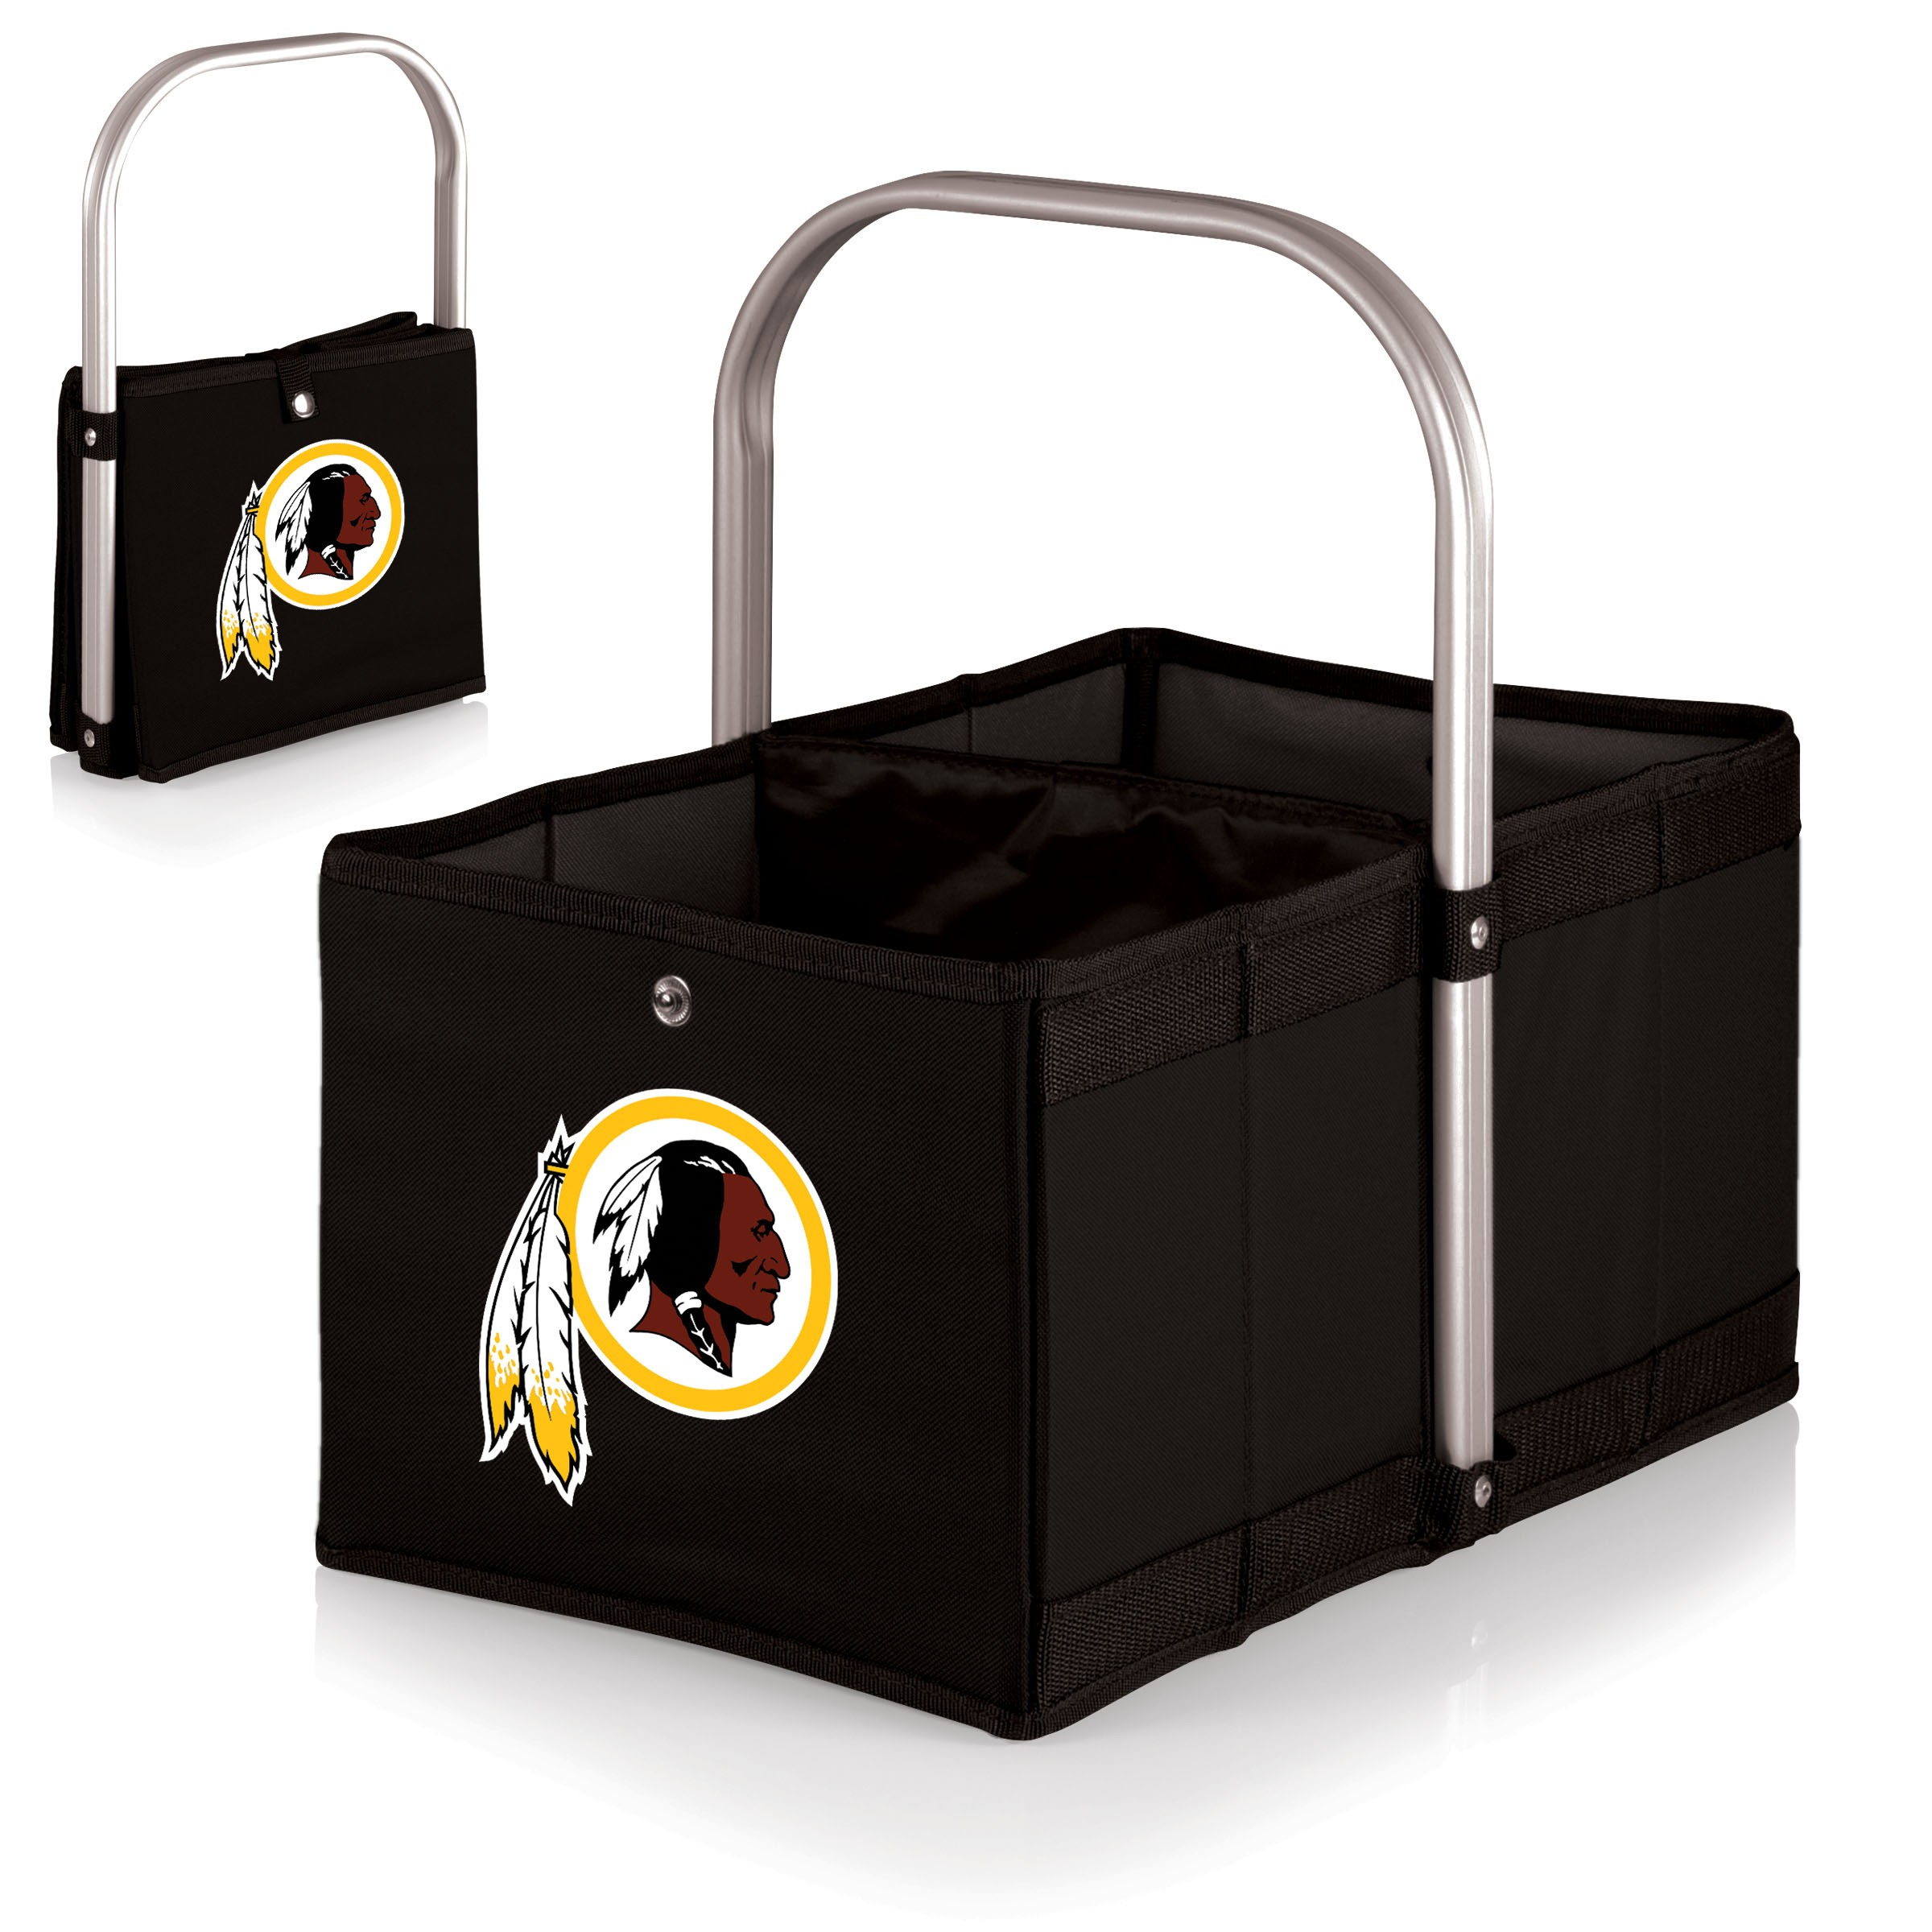 Washington Redskins Basket